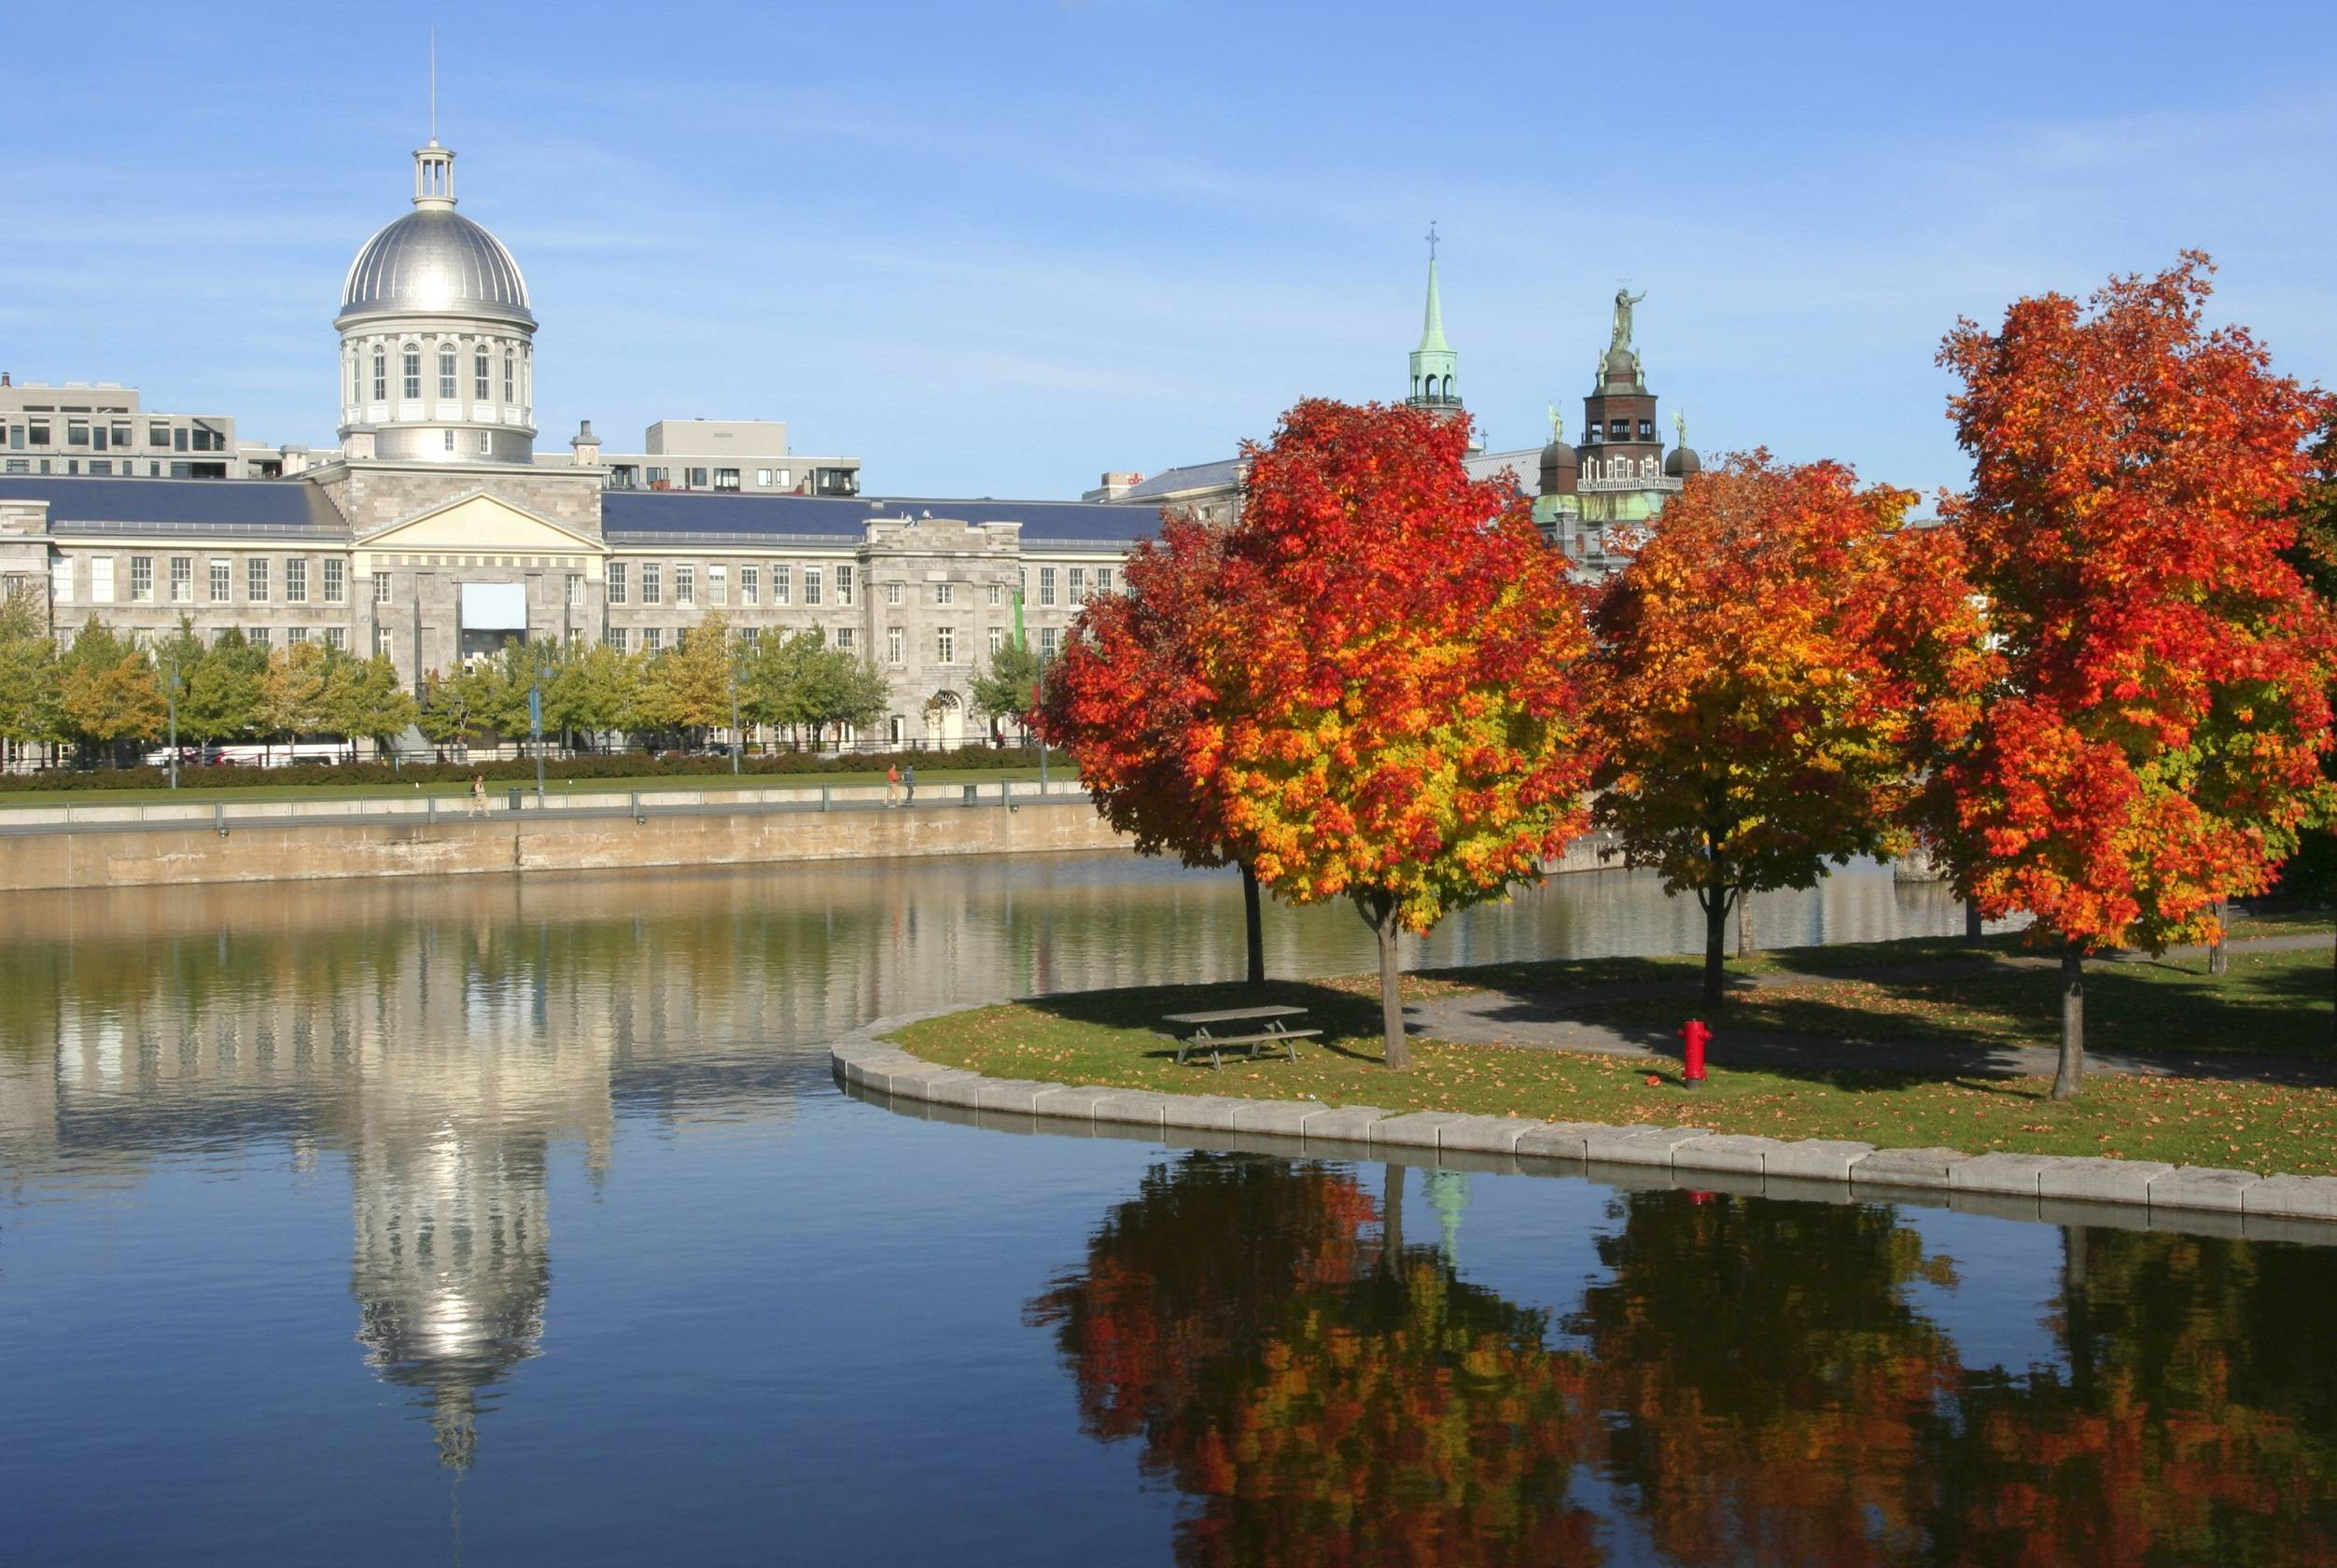 Old Montreal, Bonsecours Market reflections in autumn